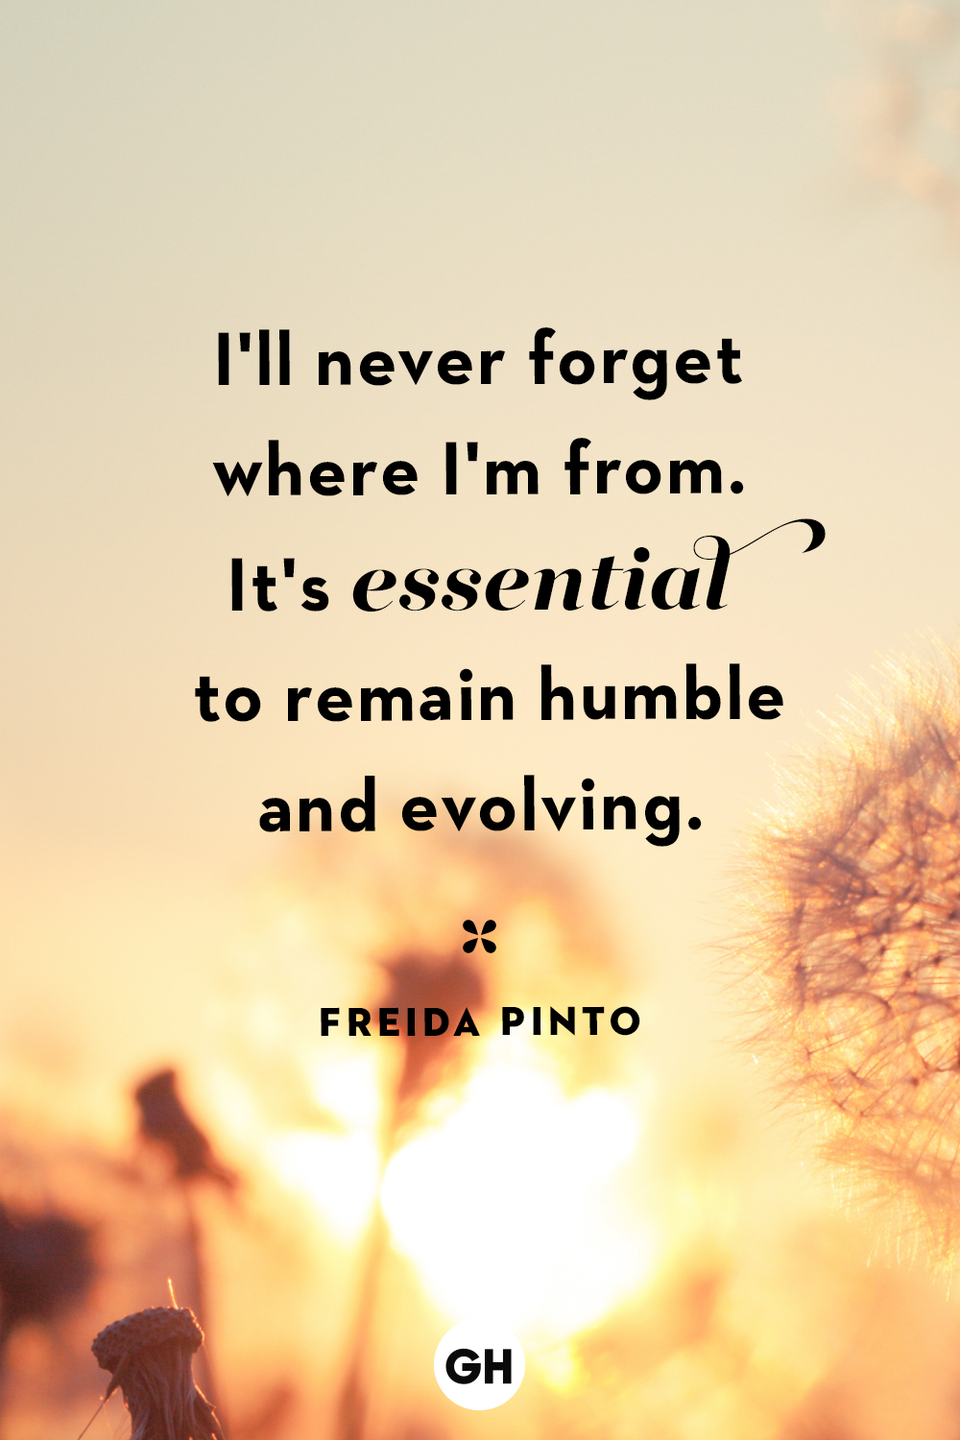 <p>I'll never forget where I'm from. It's essential to remain humble and evolving.</p>